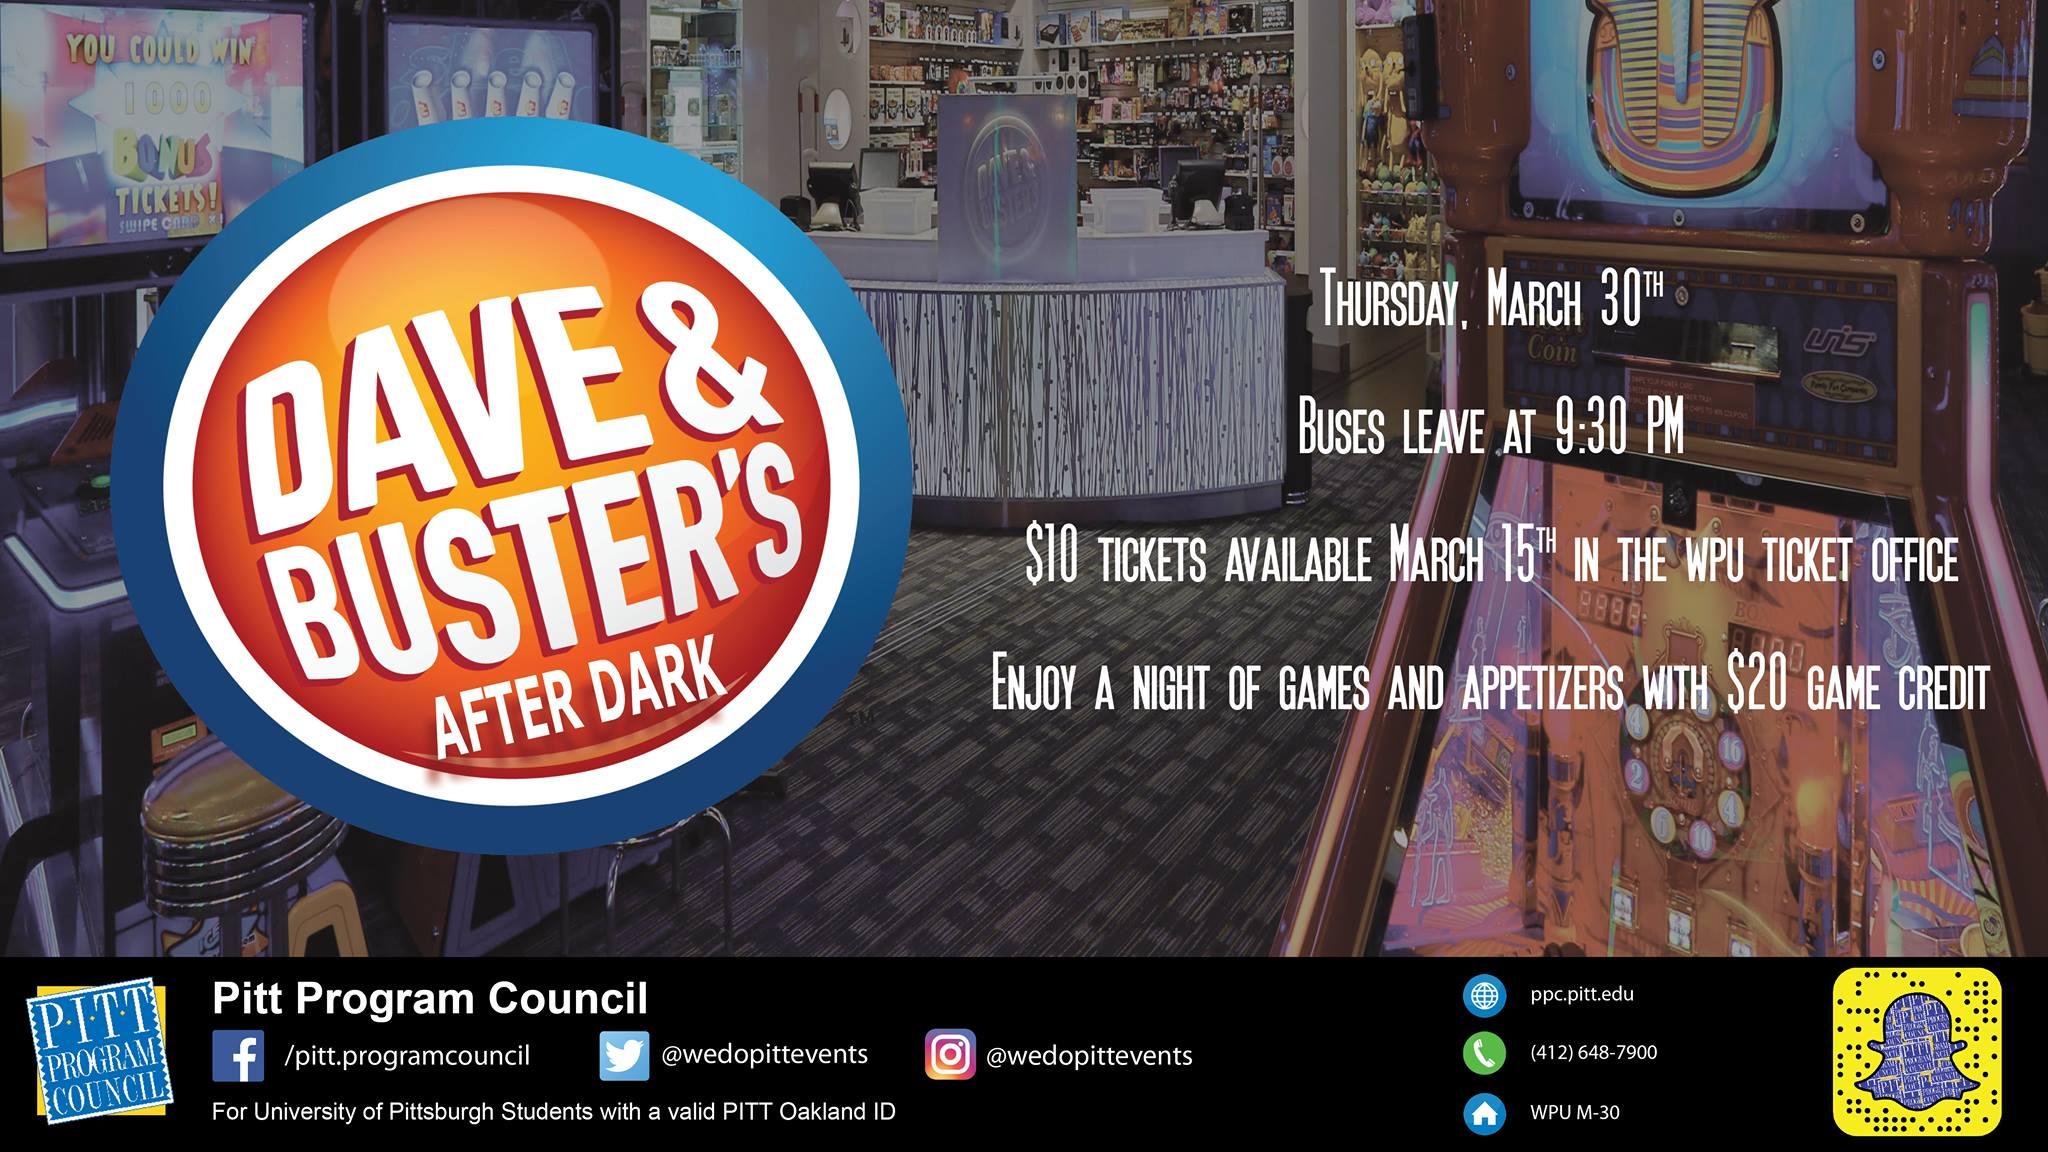 Dave and Buster's After Dark